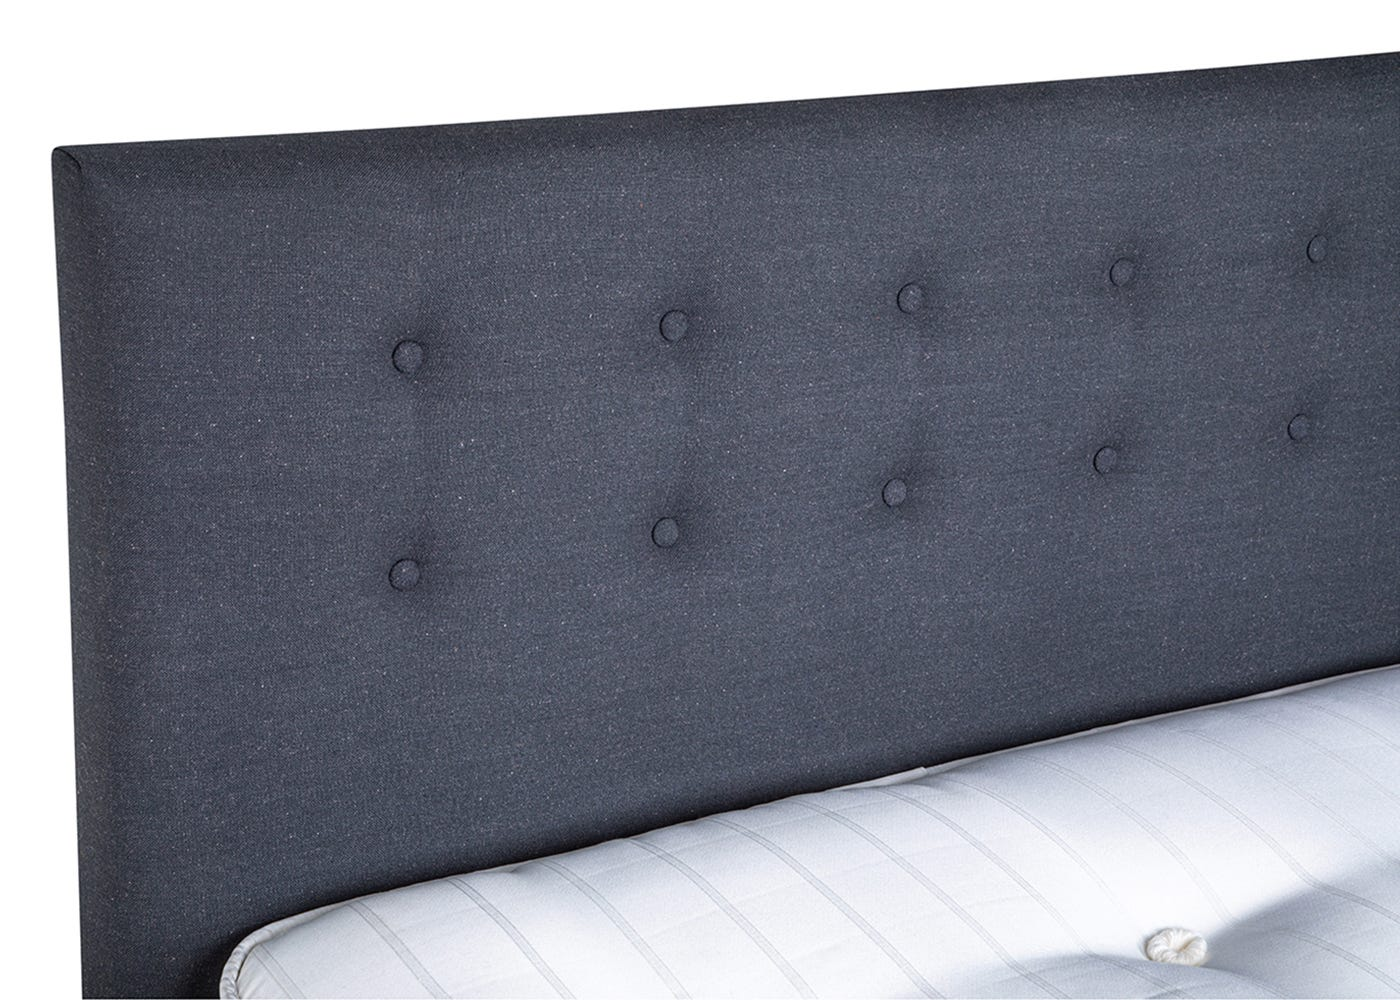 As shown: Upholstered headboard.